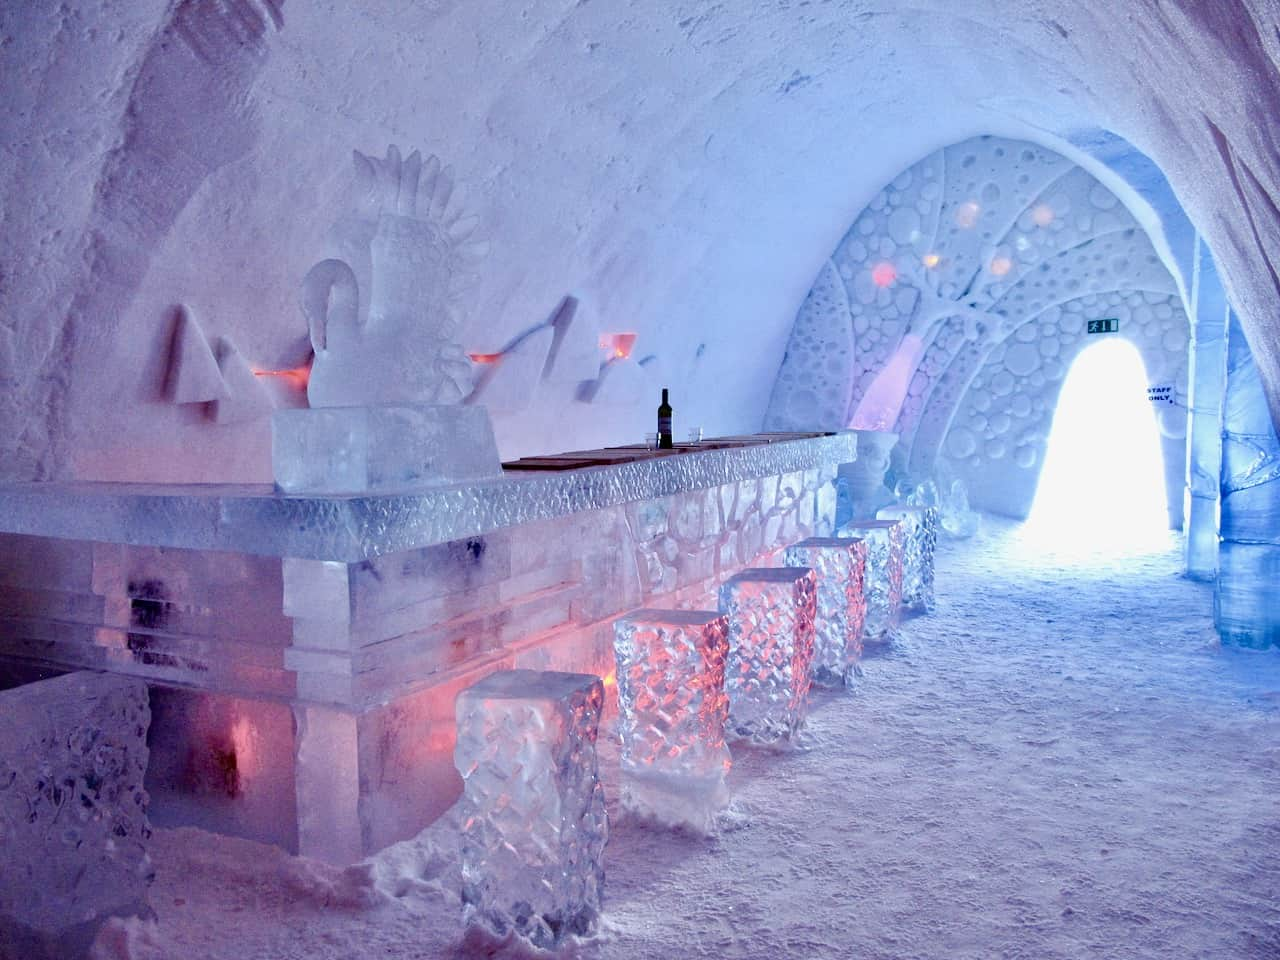 Sleeping in the Snow Hotel in Finnish Lapland